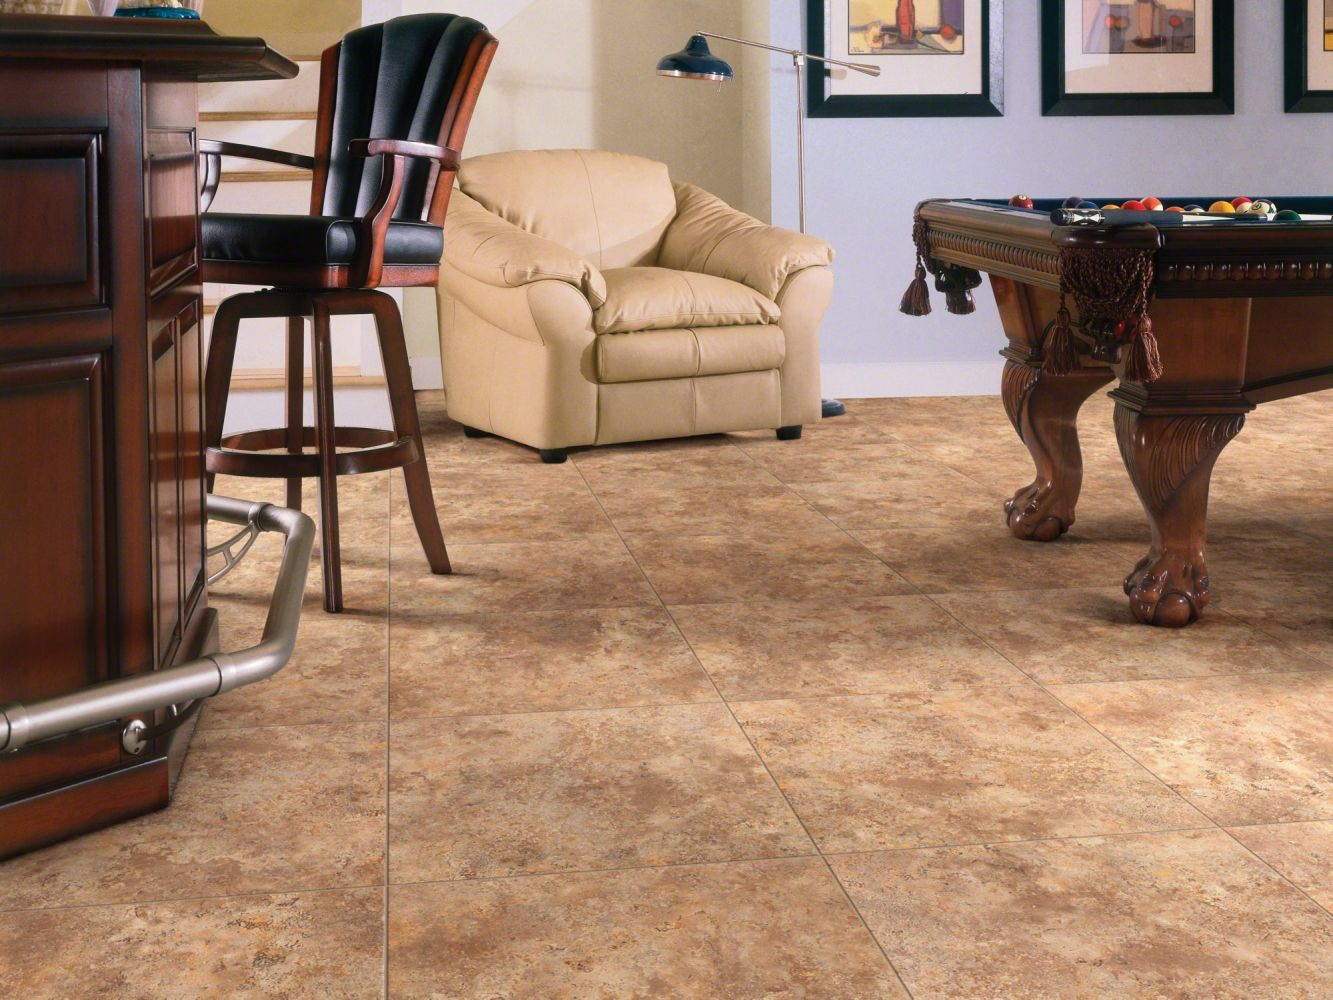 Shaw Floors Nfa HS Serenity Lake Tile Baked Clay 00670_VH505